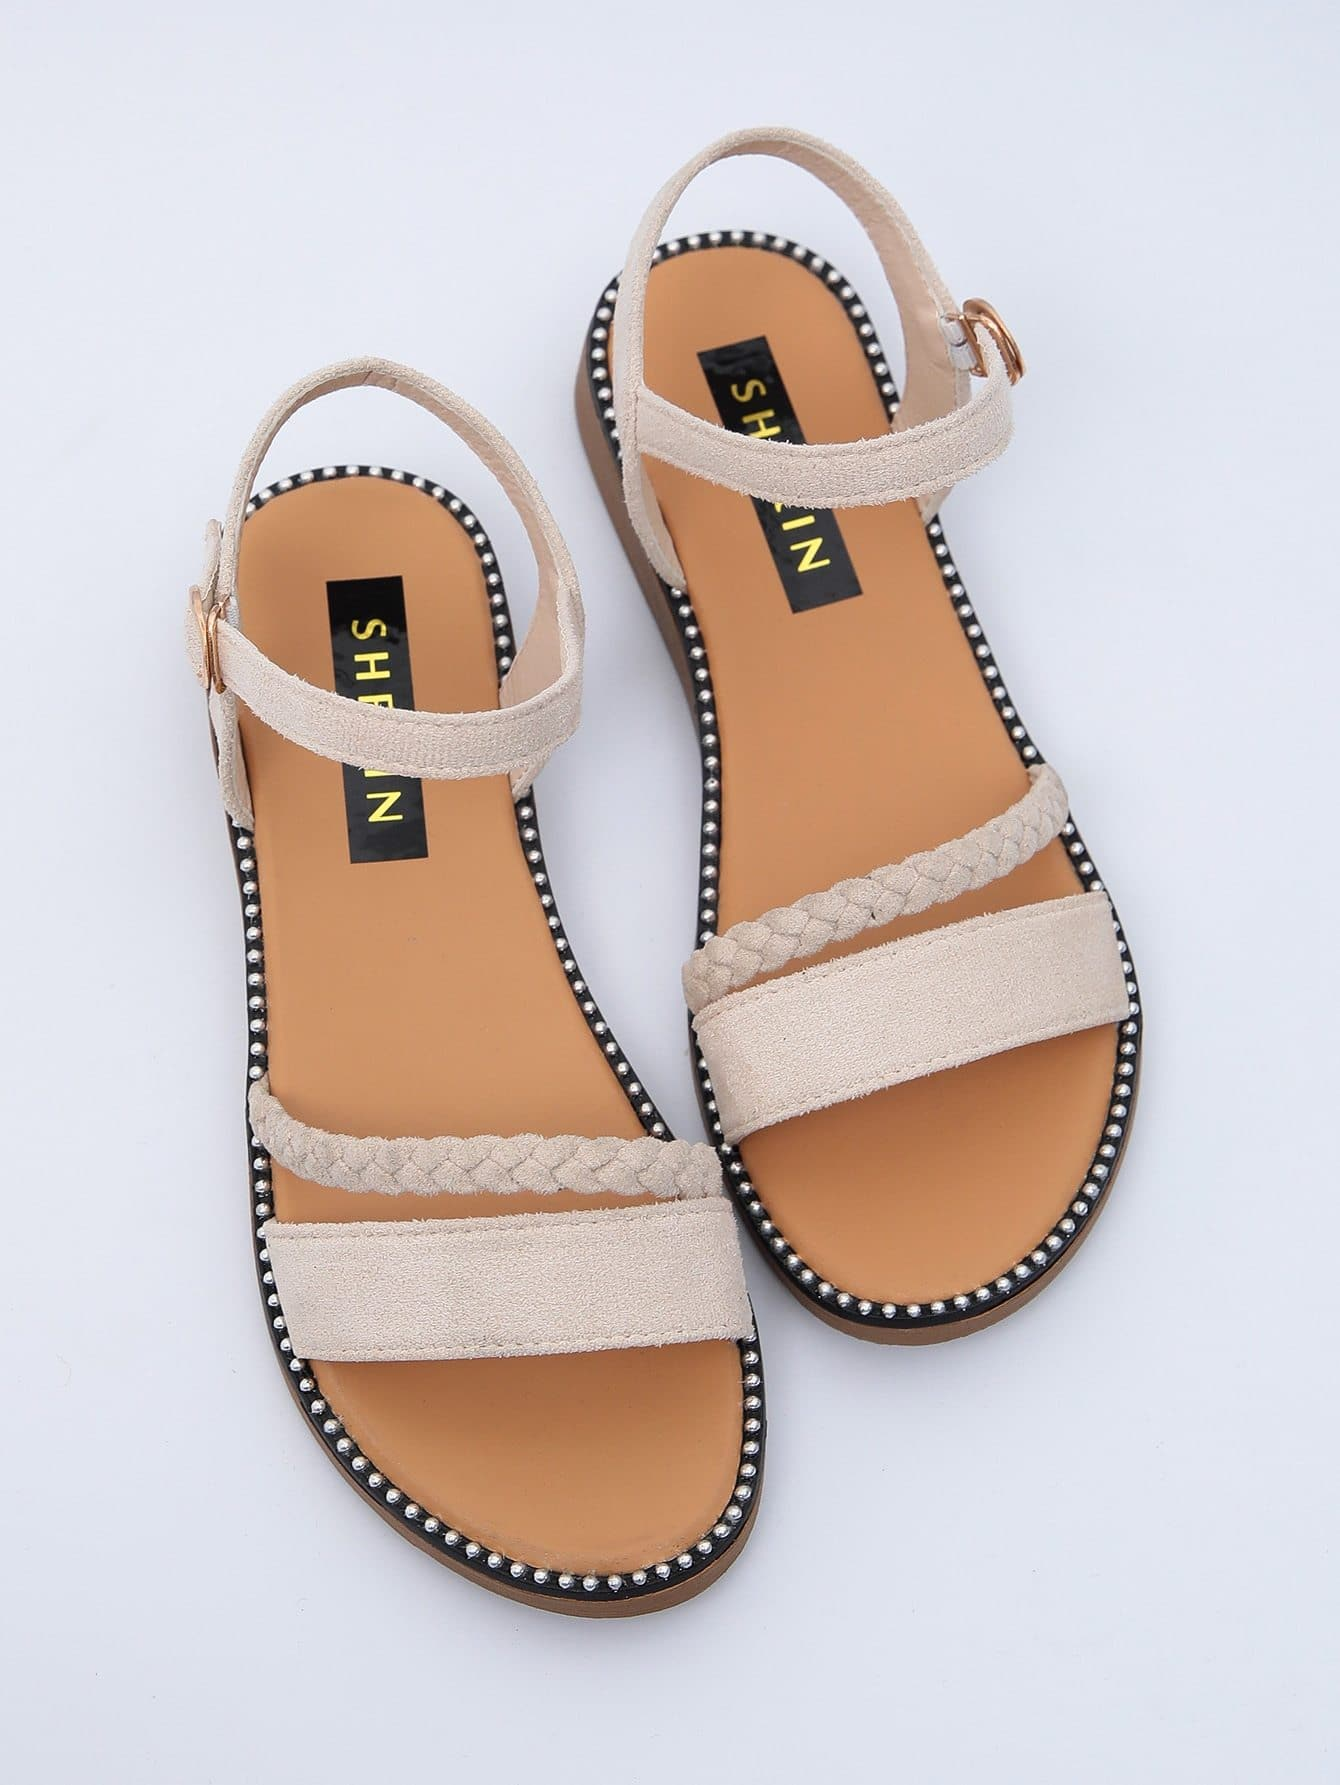 Open Toe Ankle Strap Sandals - FLJ CORPORATIONS